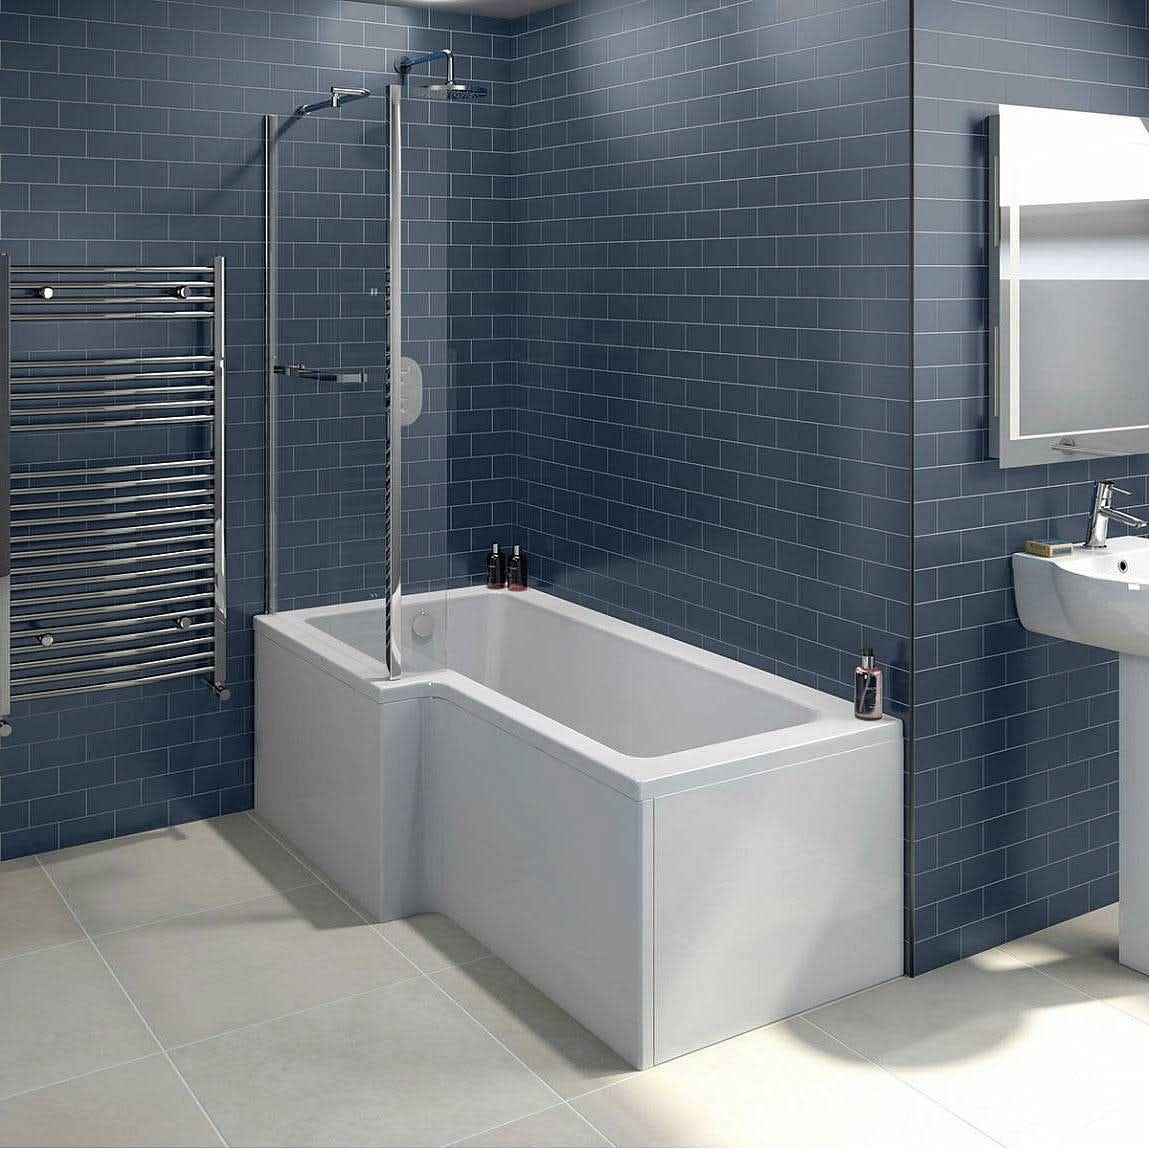 Boston Shower Bath 1700 x 850 LH inc. Screen & Towel Rail